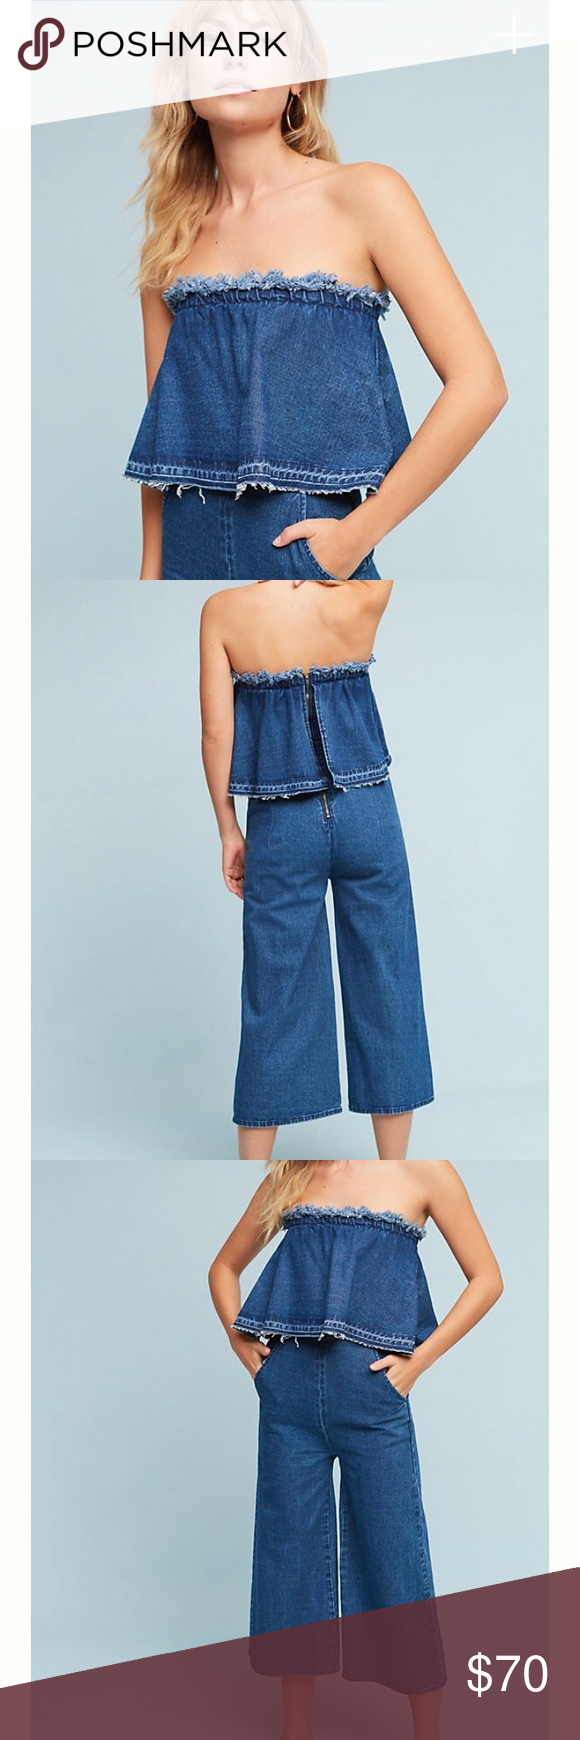 898a3a3ddbe7 Anthropologie Tiered Denim jumpsuit Currently in stores and online for   138!! Size xs but